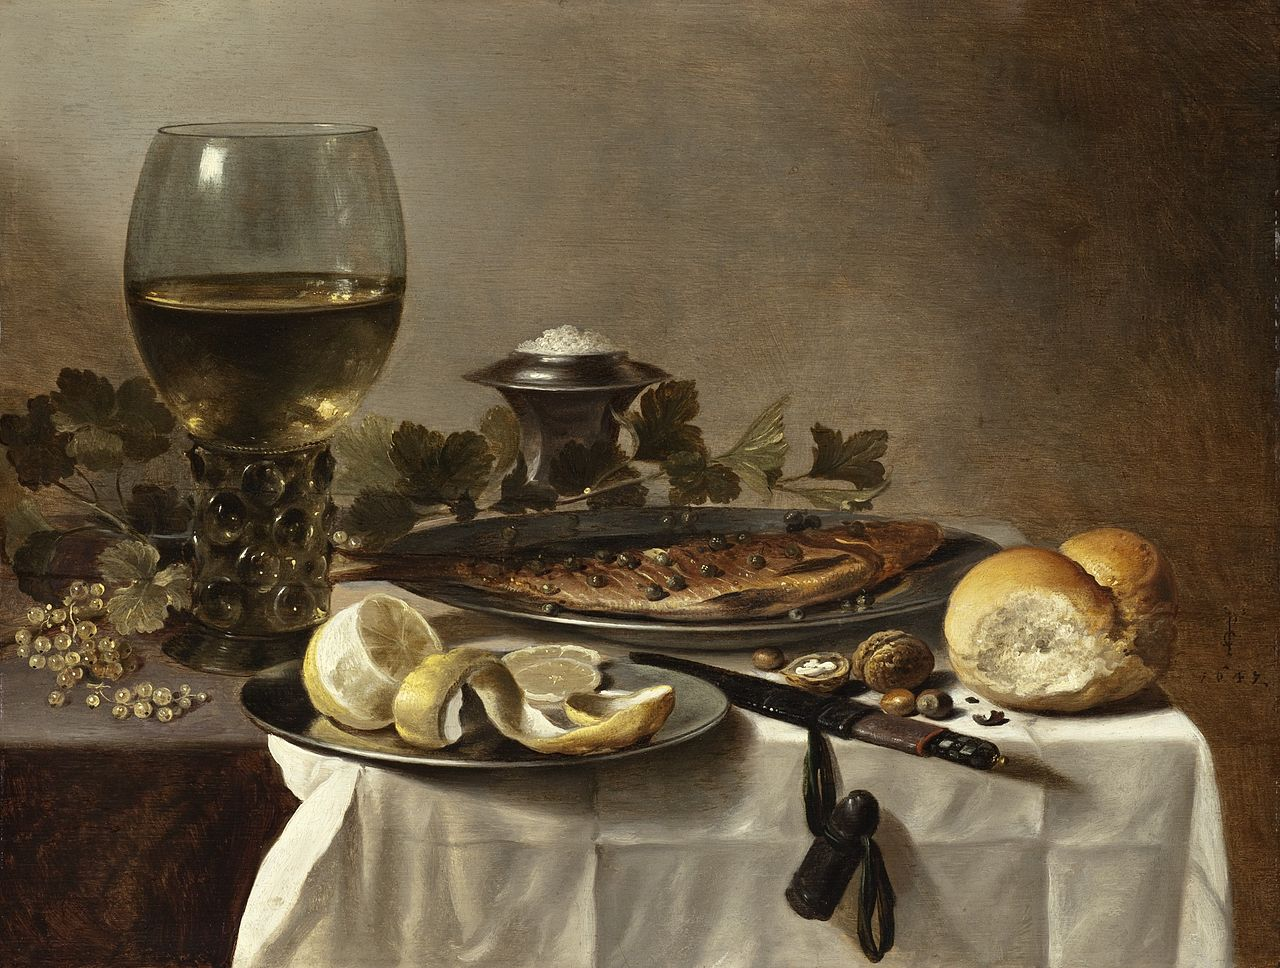 File:Still Life with Herring, Wine and Bread LACMA M.2009.106.19 (1 of 2).jpg - Wikimedia Commons